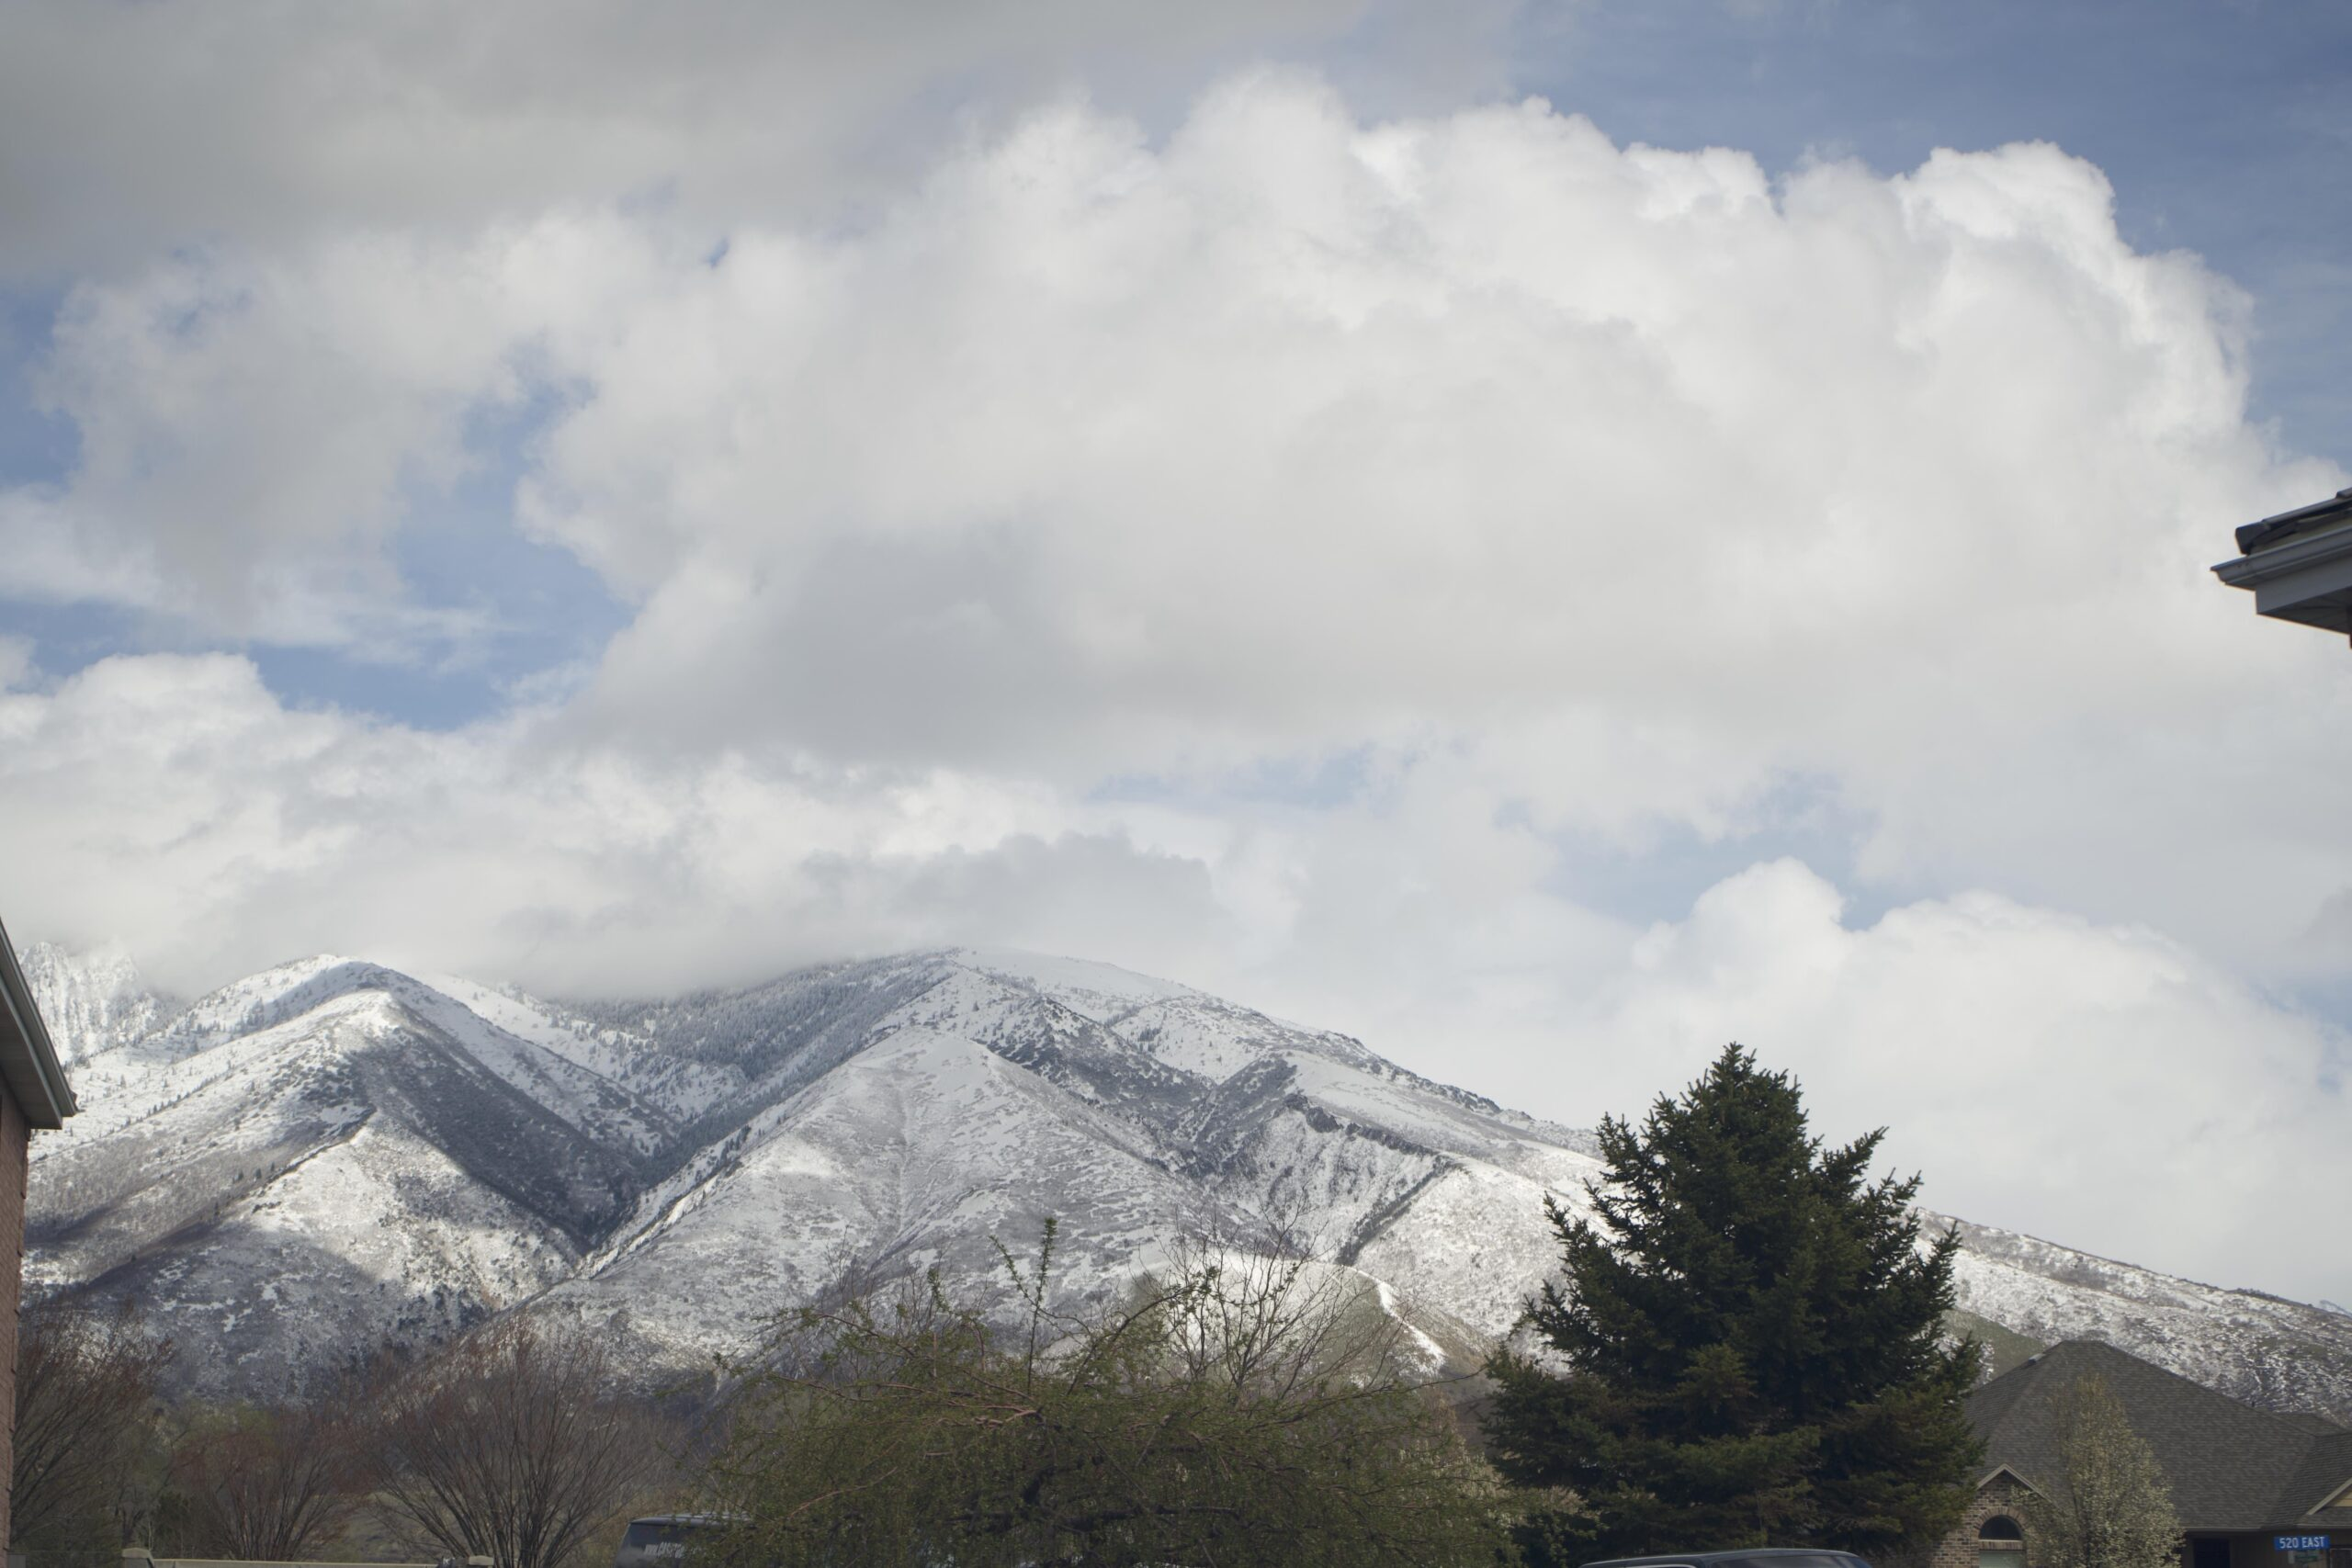 Draper mountain views from Unified Family Therapy office.